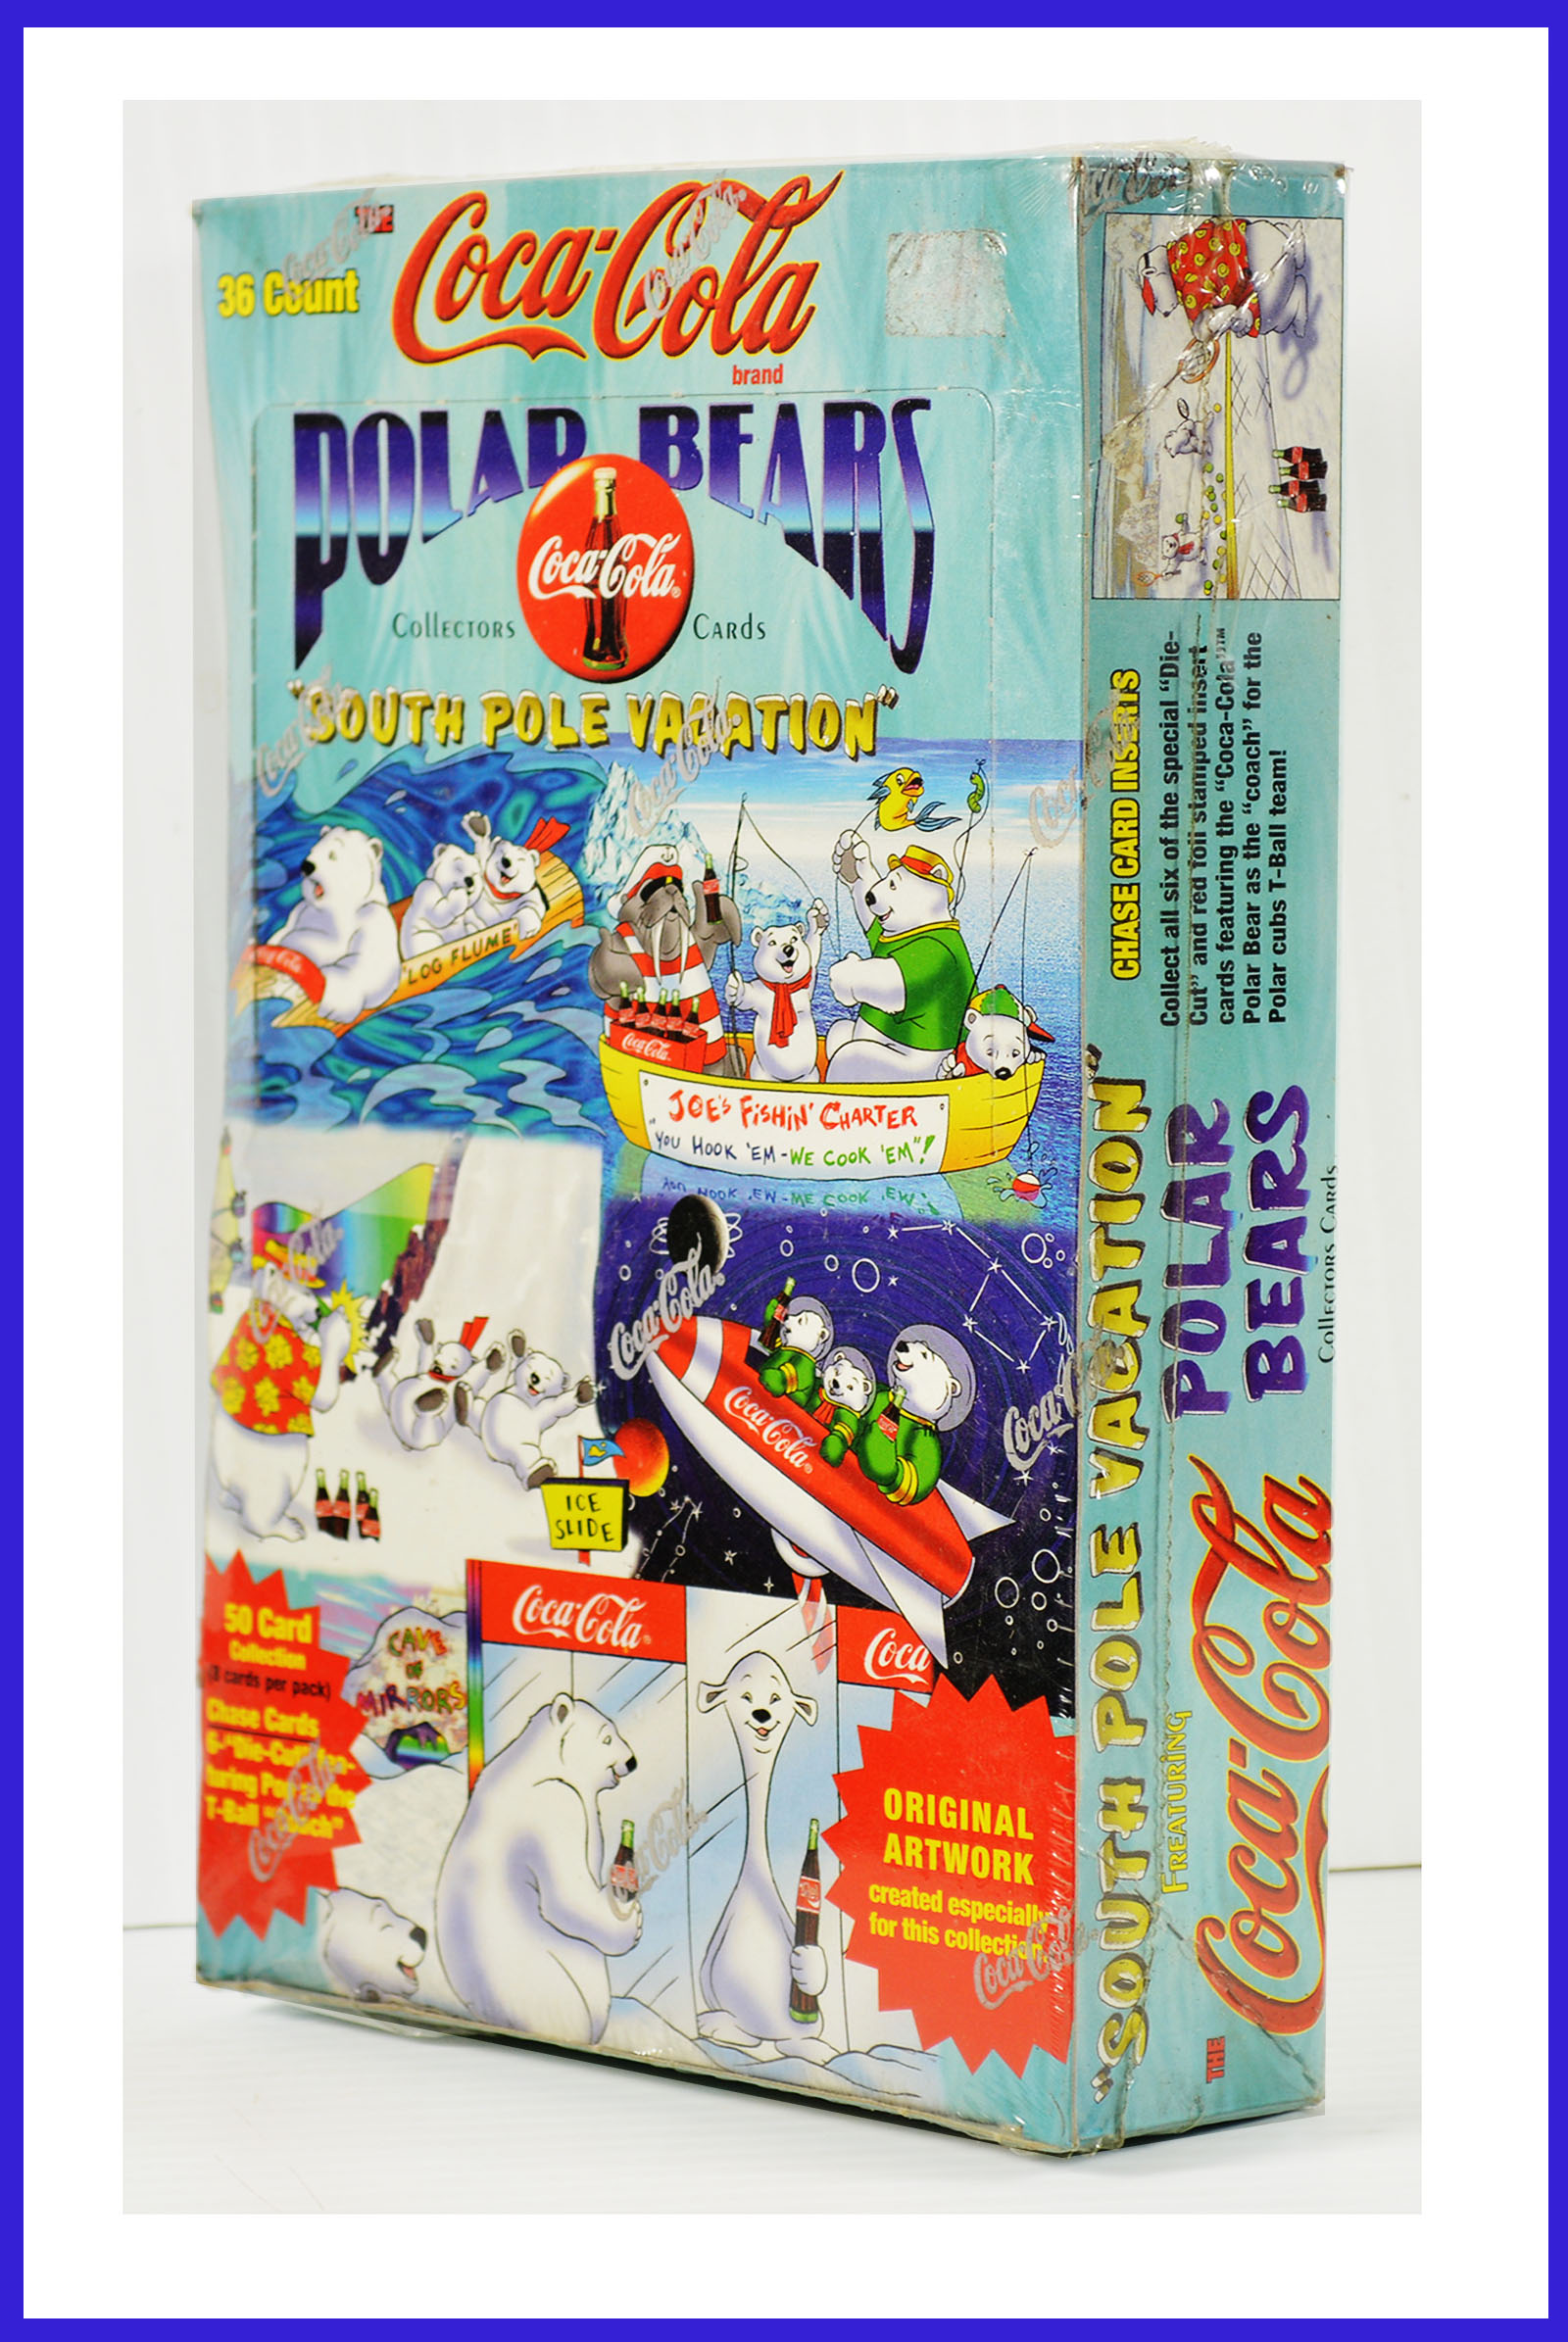 Coca-Cola South Pole Vacation Coke Polar Bears Trading Card Box 36 packs of 8